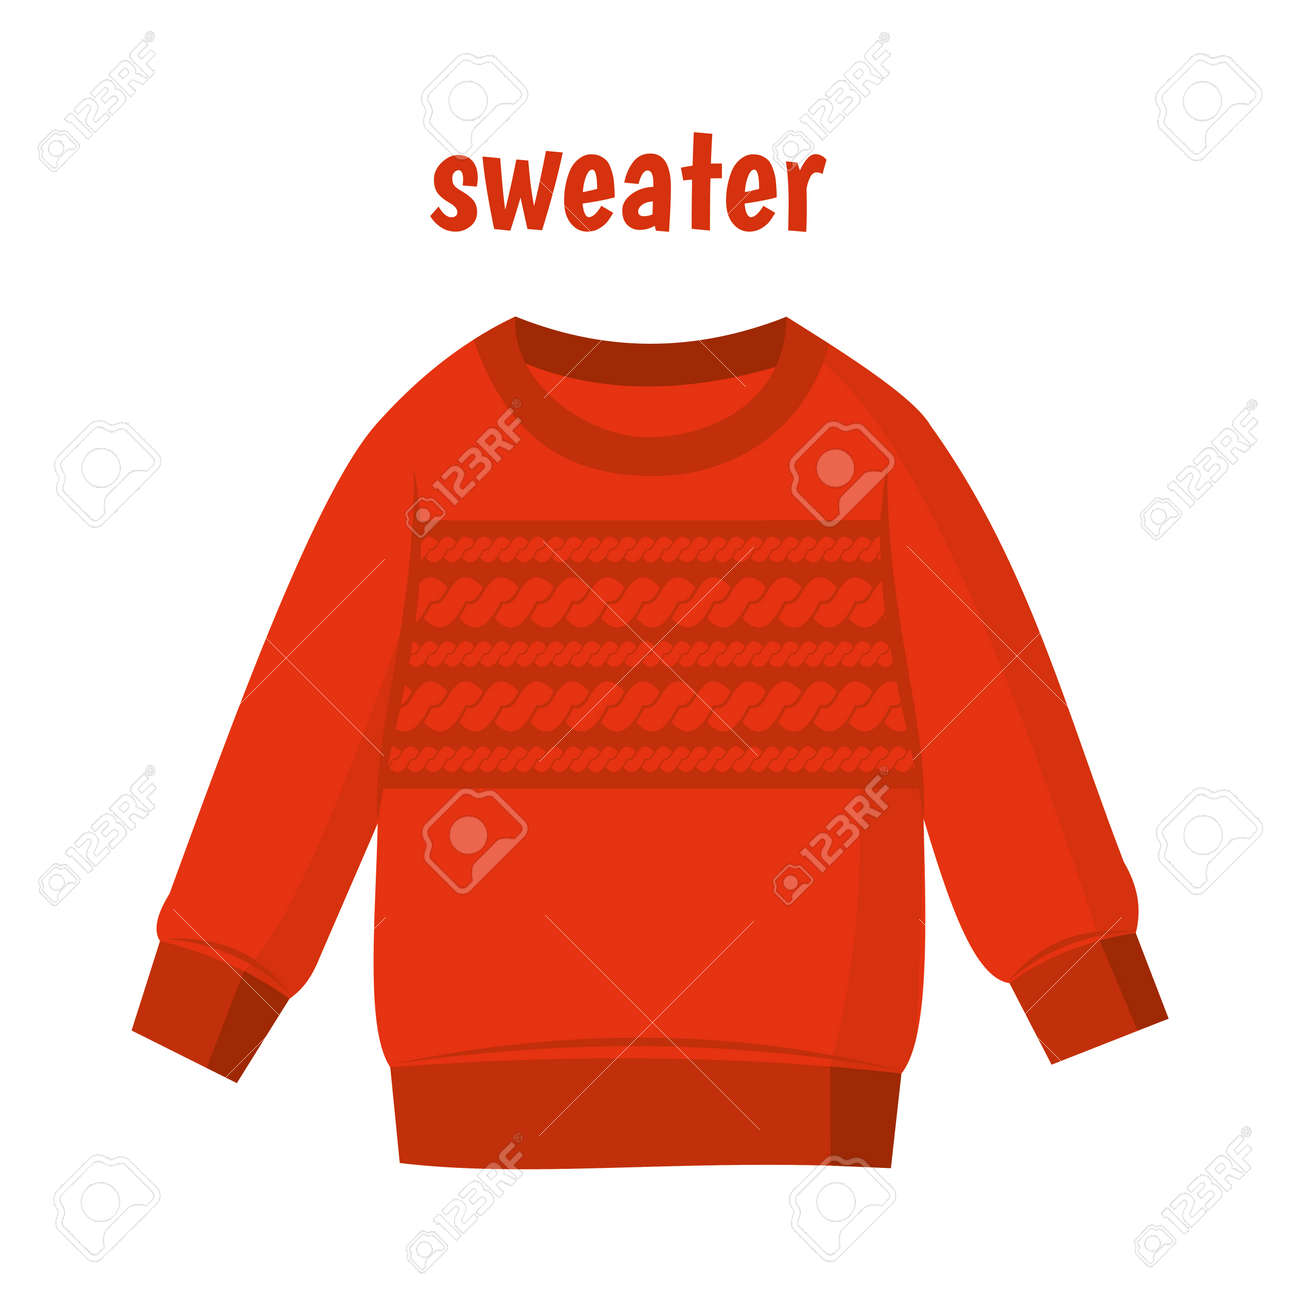 Red sweater vector illustration isolated on white background